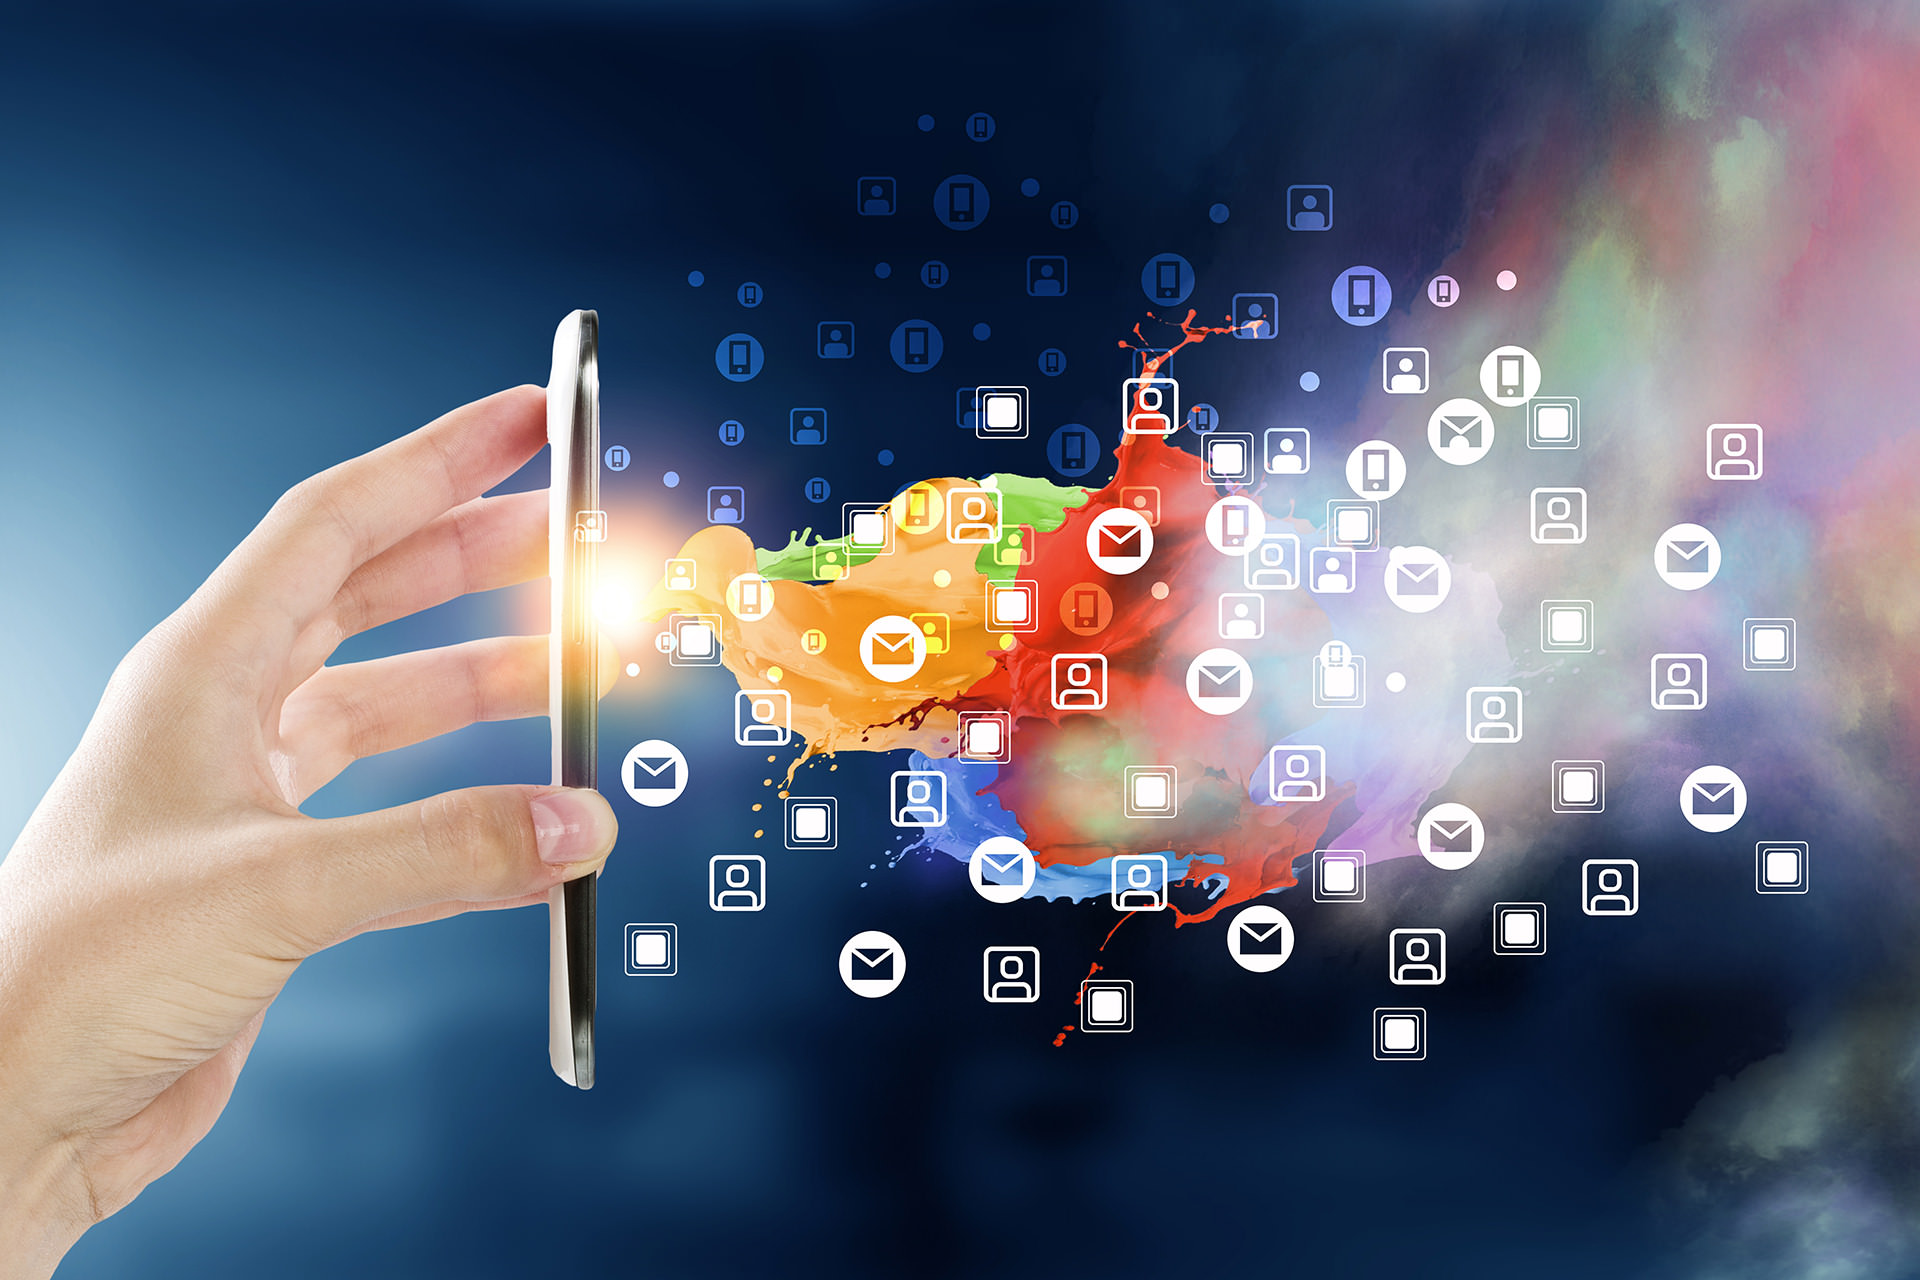 A2P Messaging Market to Witness Highest Growth in Near Future | Tata Communications, Cequens Llp, Infobip Communications